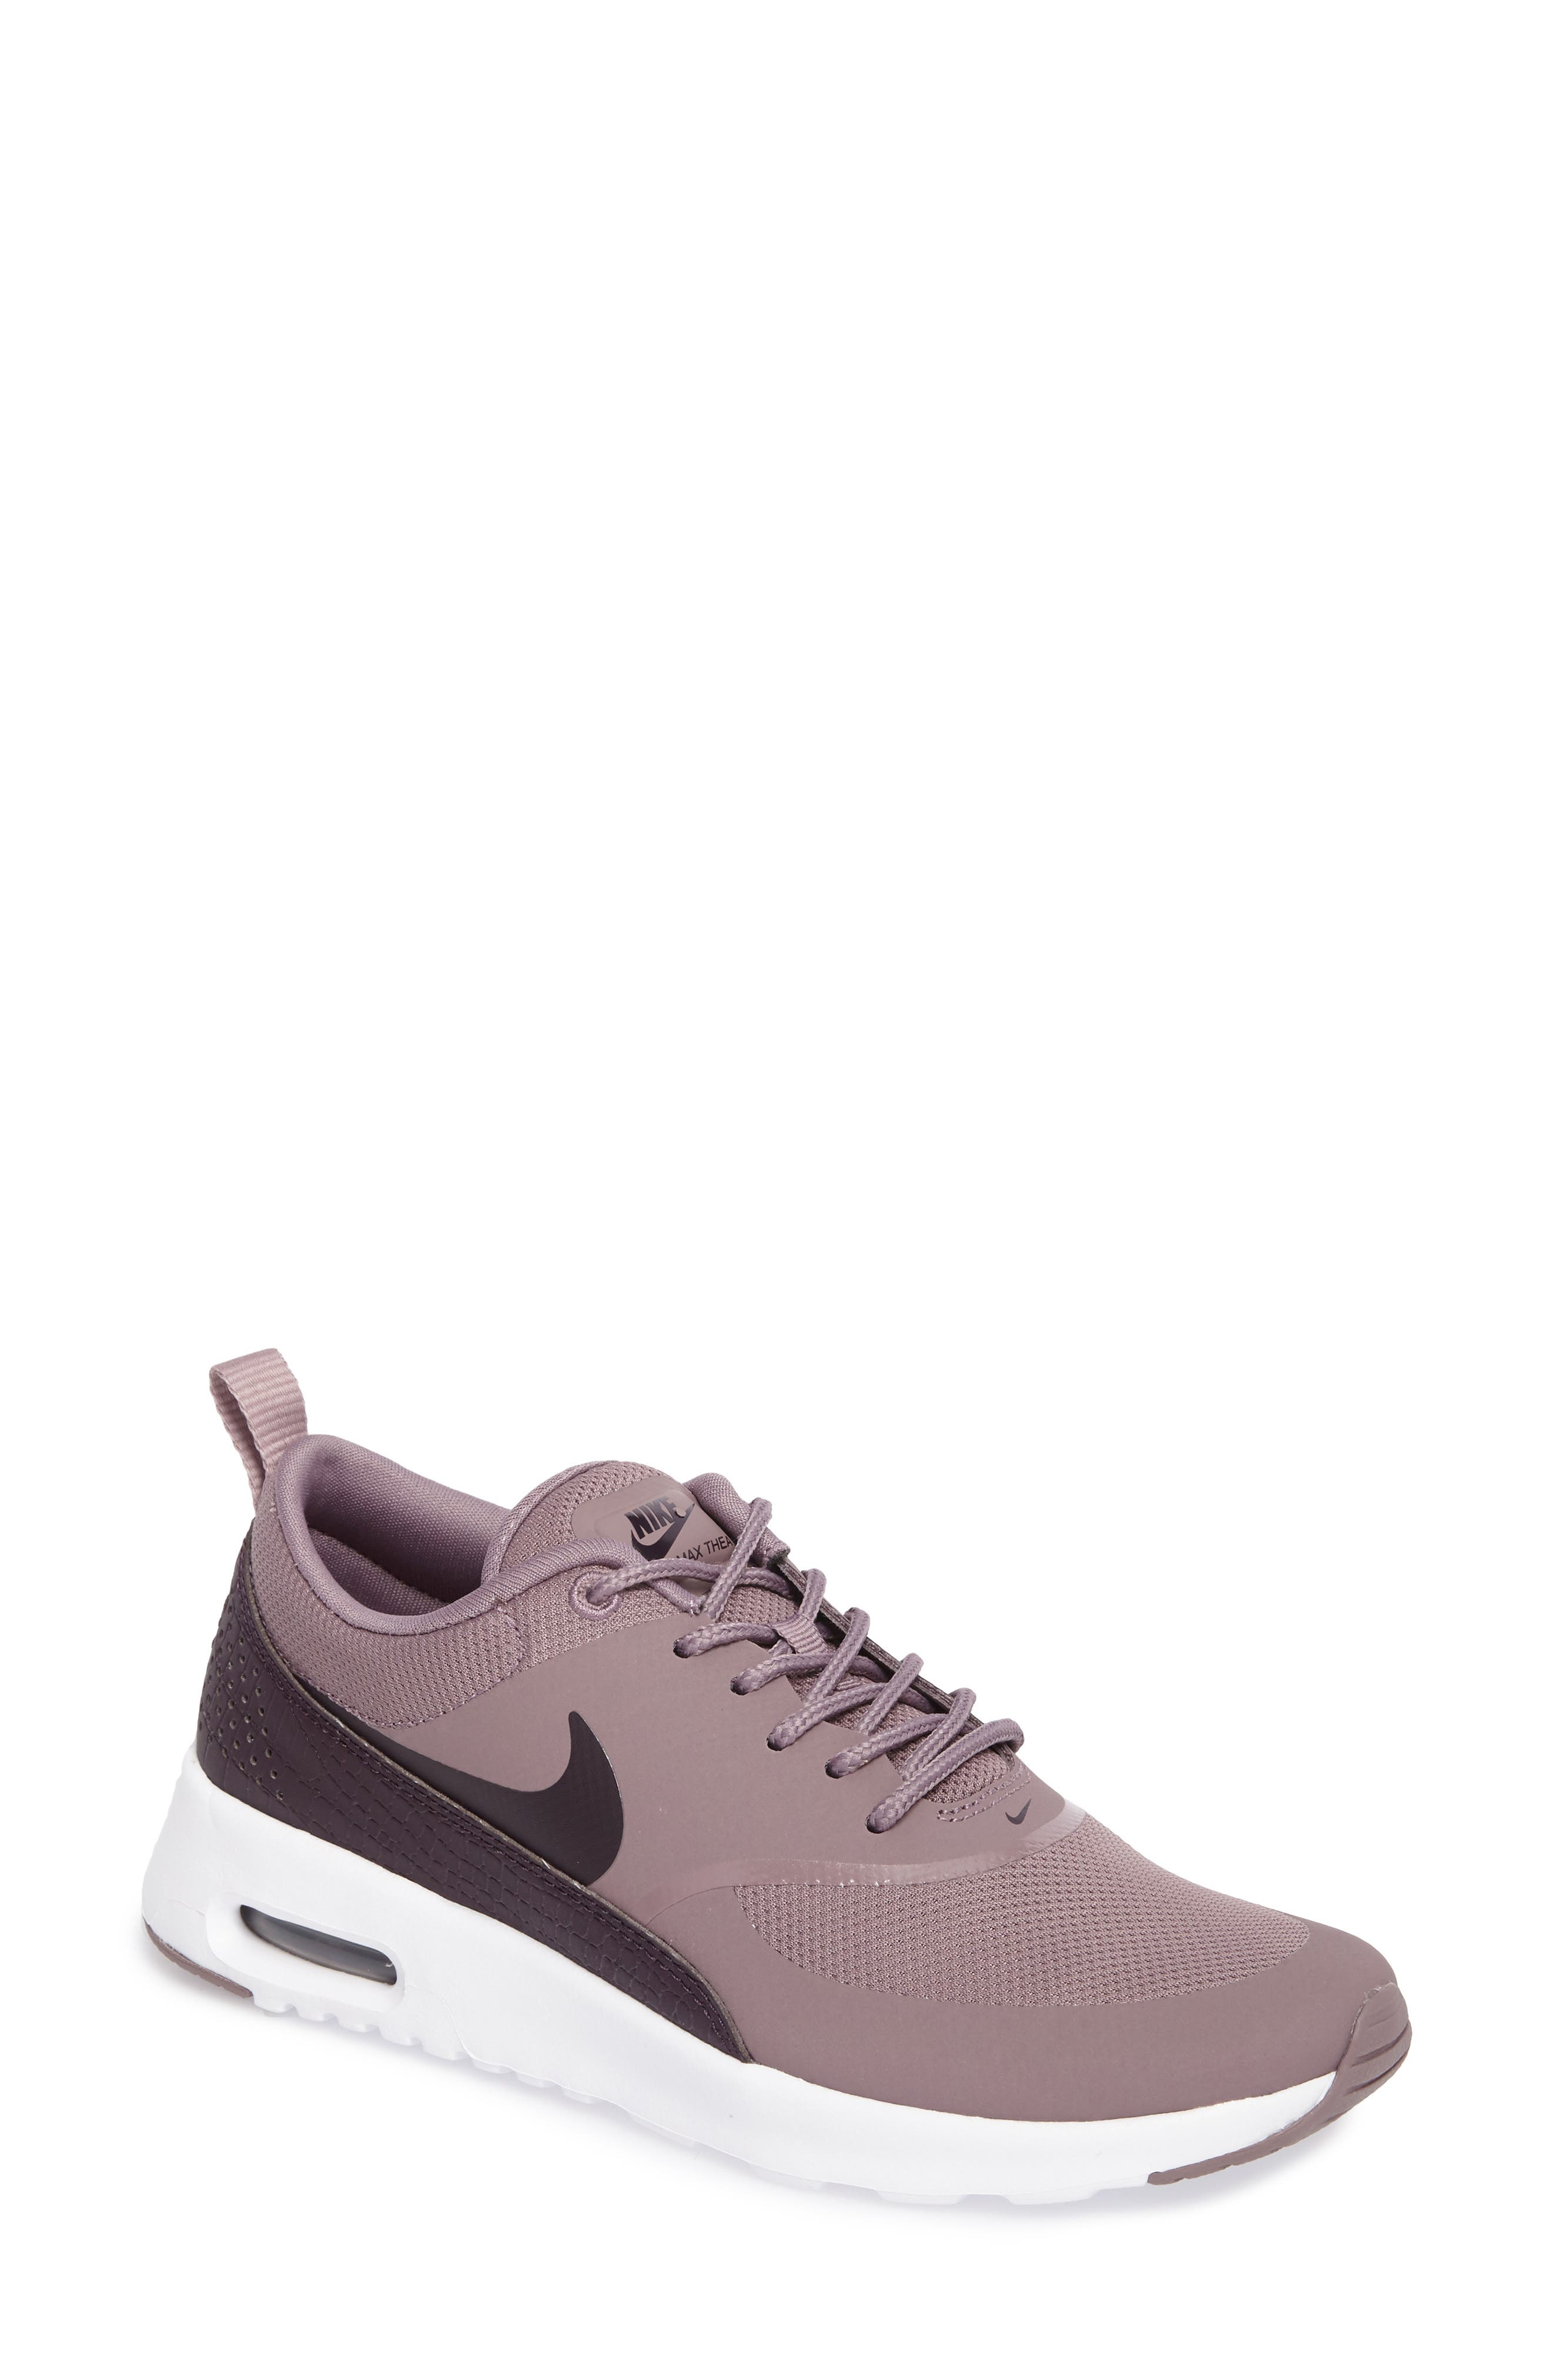 Alternate Image 1 Selected - Nike Air Max Thea Sneaker (Women)